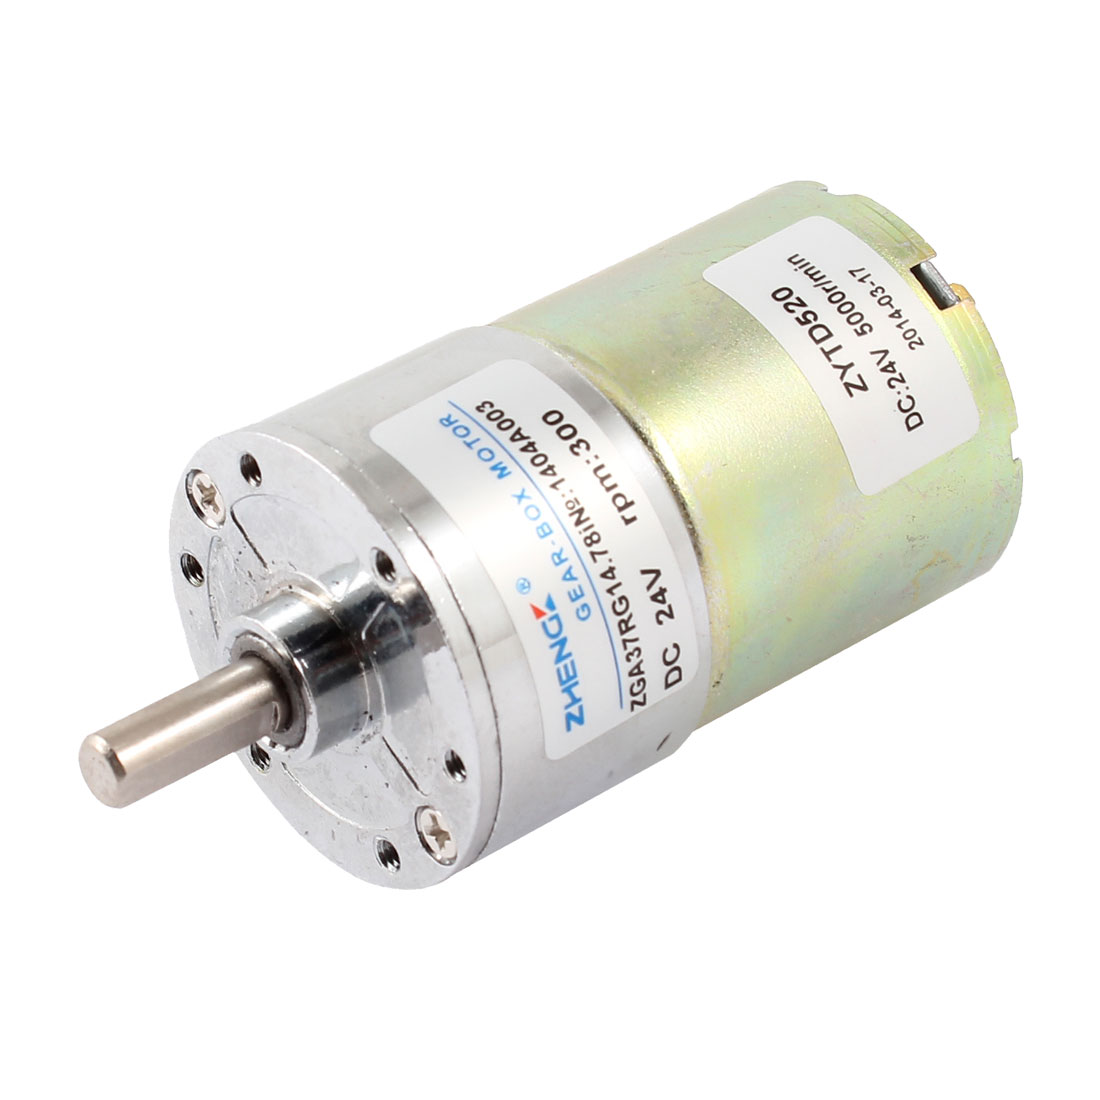 DC 24V 300 RPM Speed 6mm Dia Shaft Magnetic Gearbox Electric Geared Motor